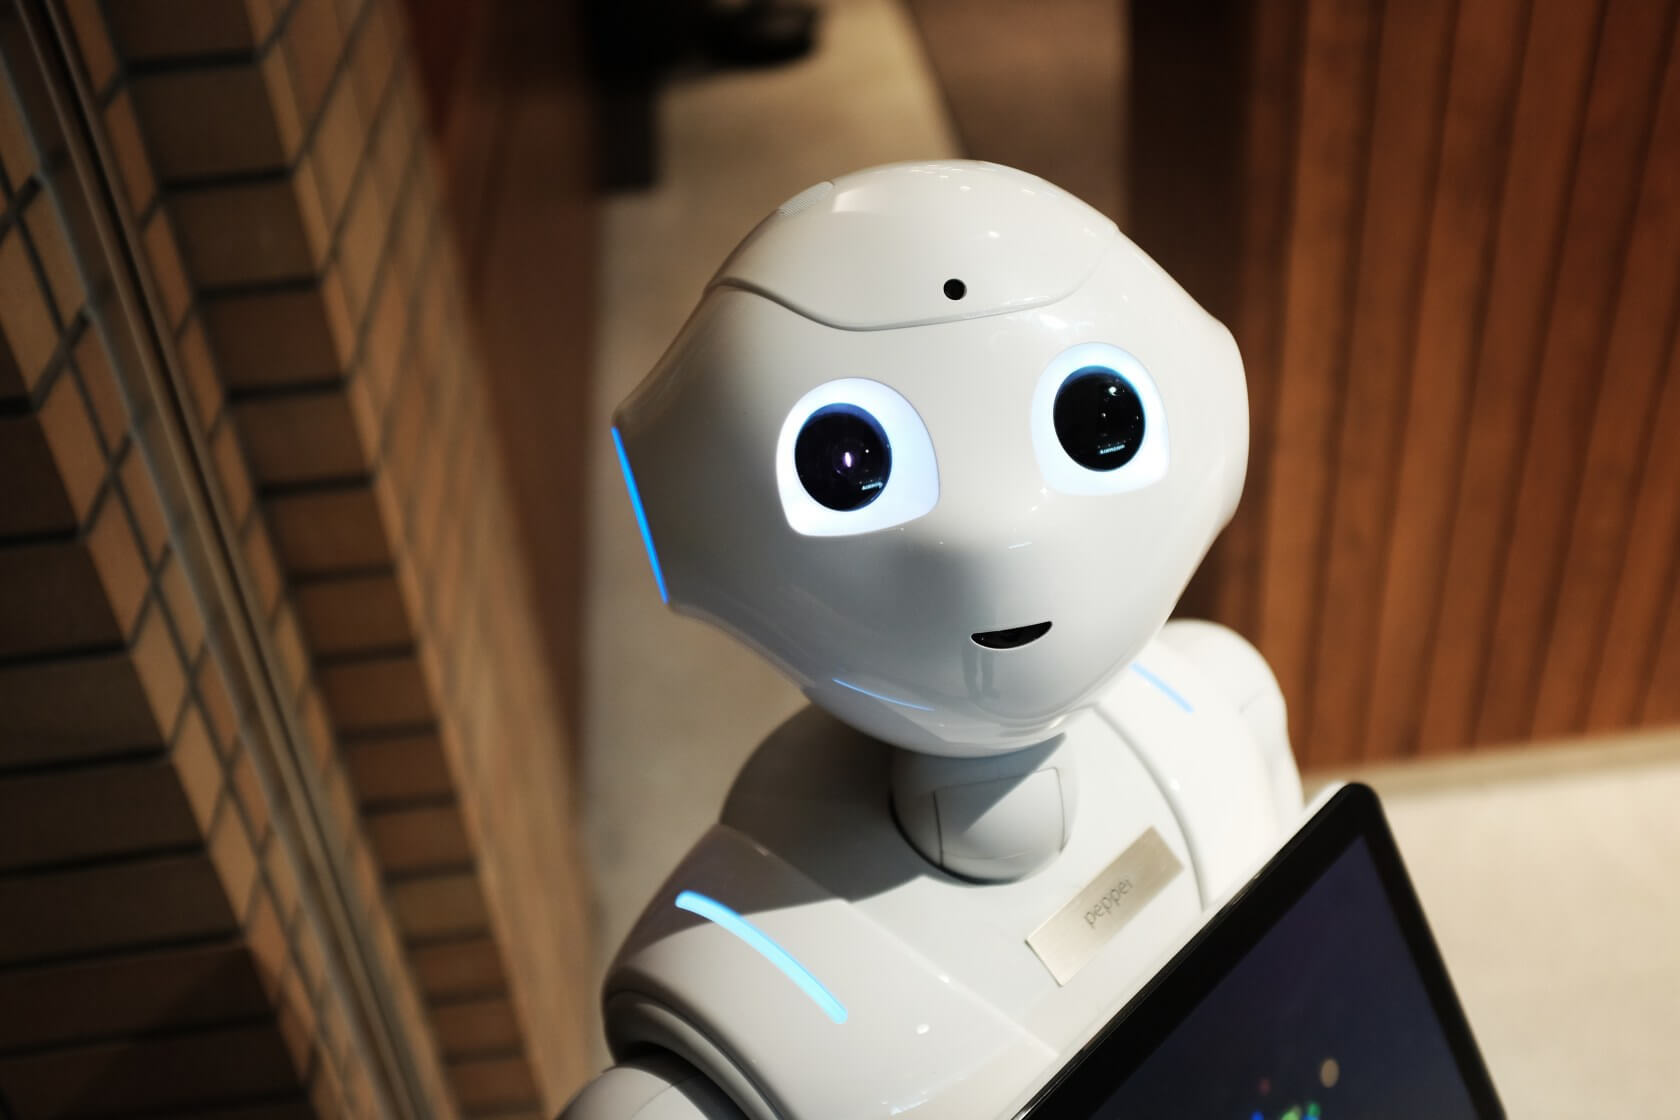 Opinion: The world of AI is still taking baby steps